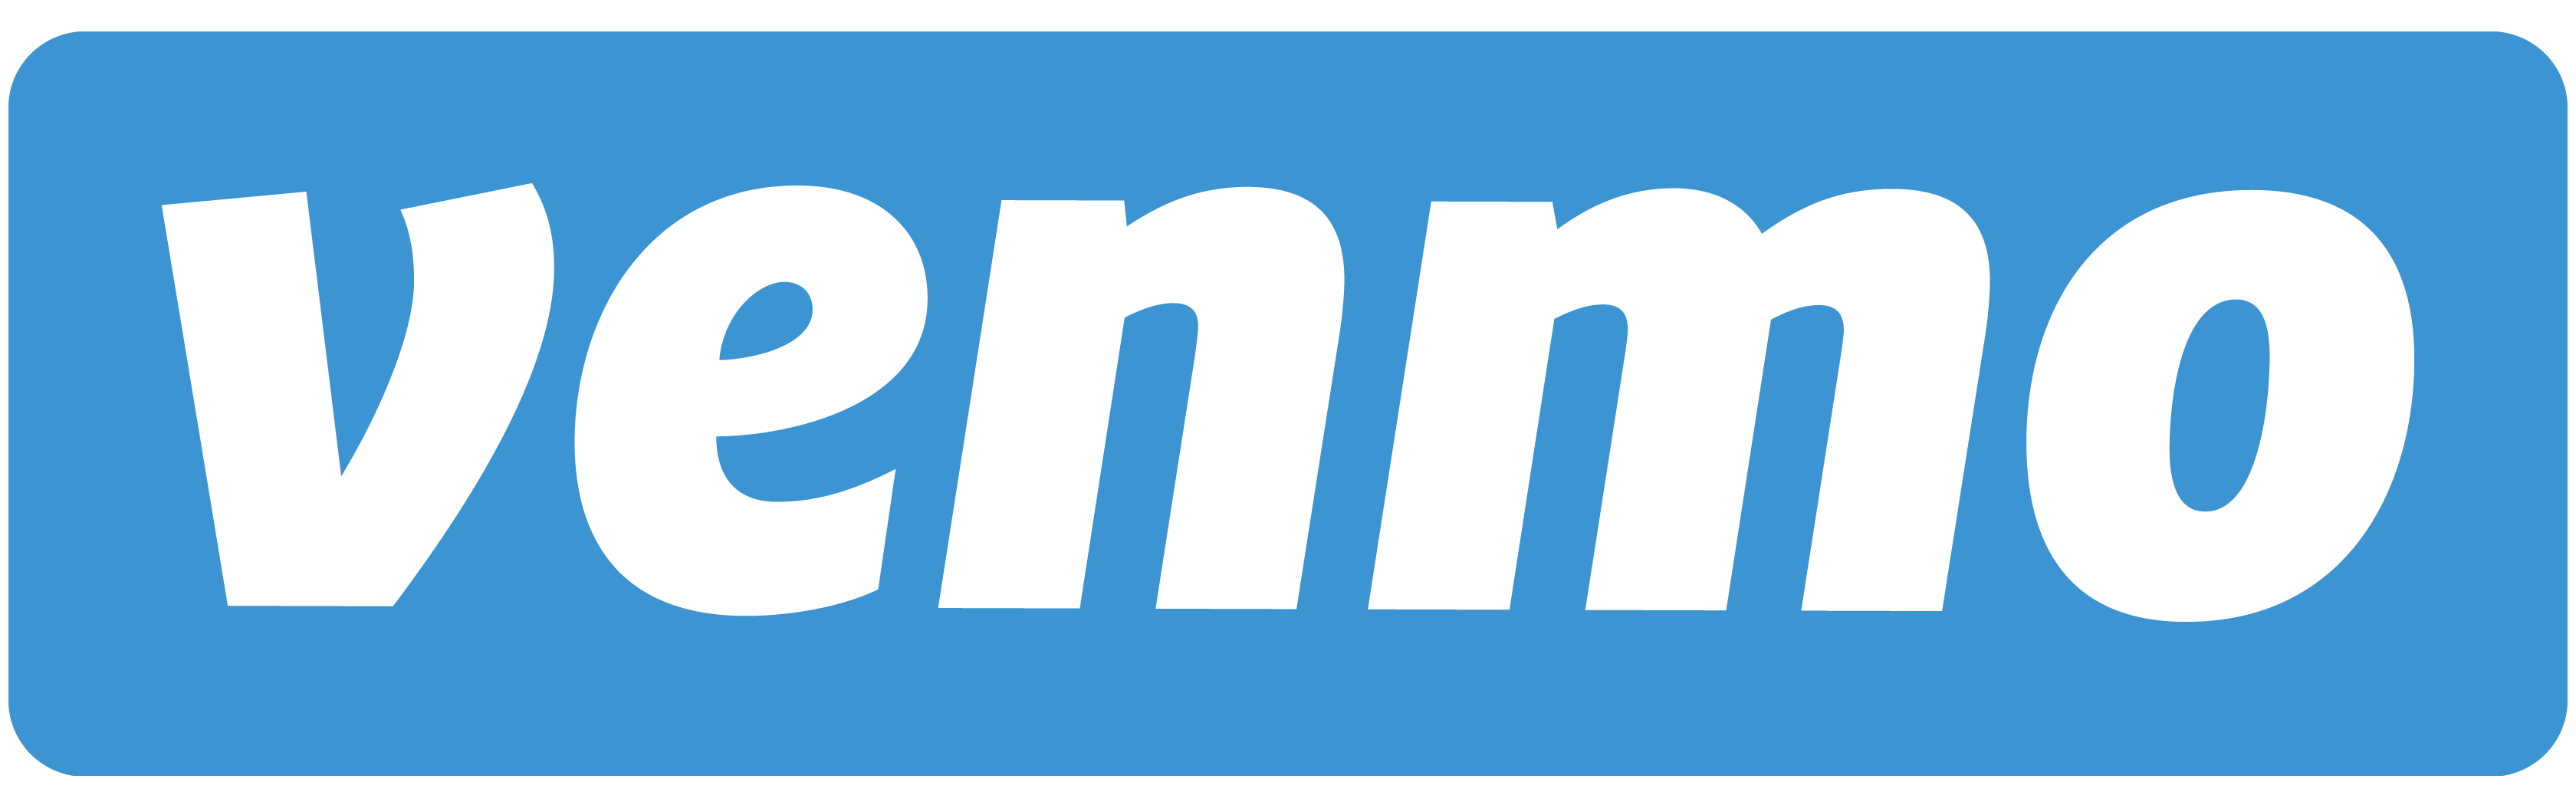 Transfer Money Like A Millennial With Venmo (App Review) - deTeched